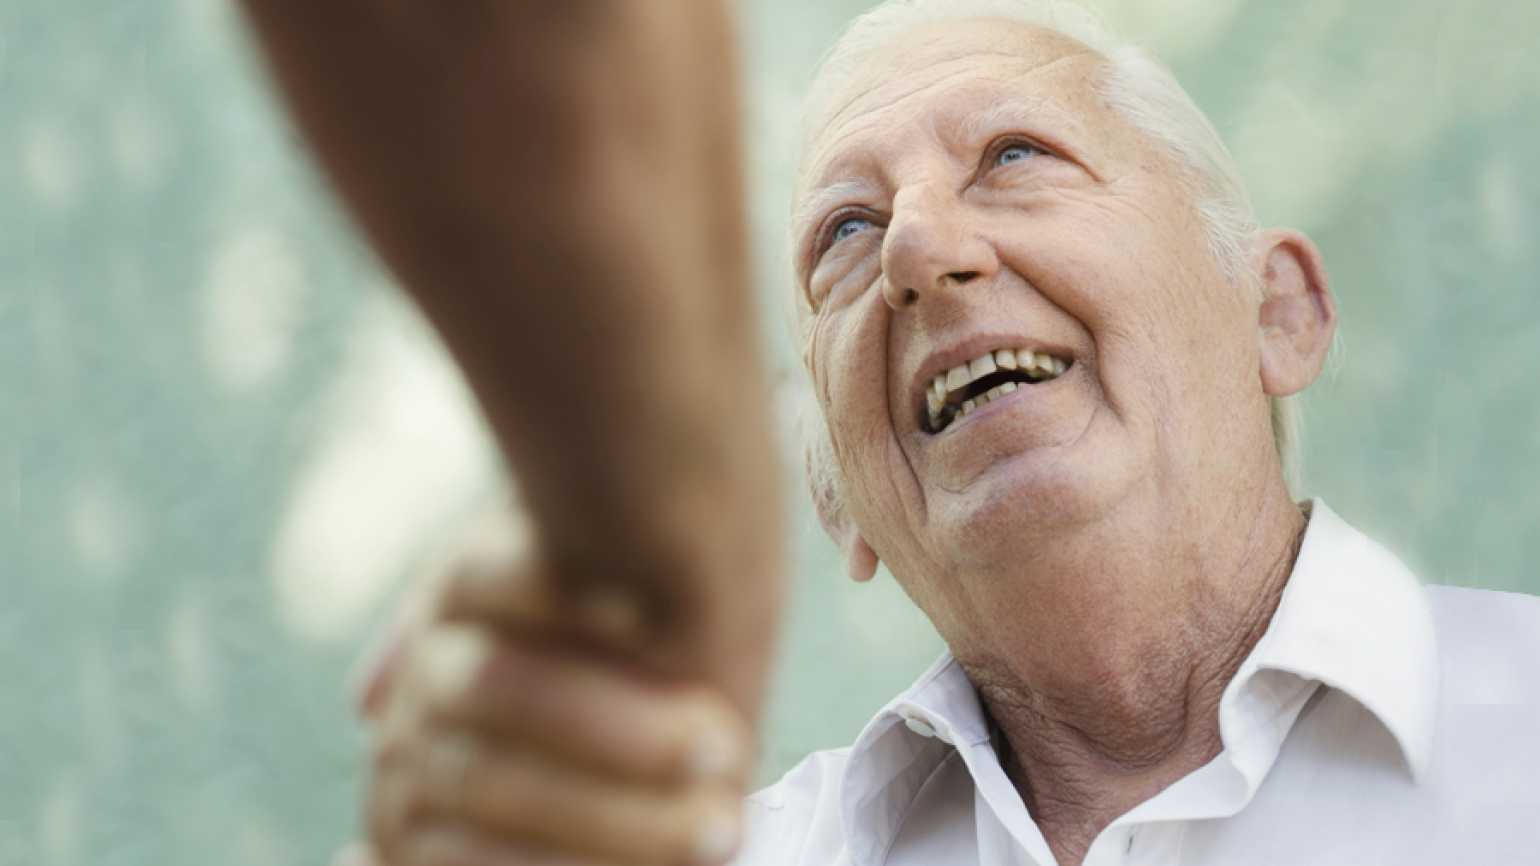 An older man greets his caregiver with a smile and a handshake.